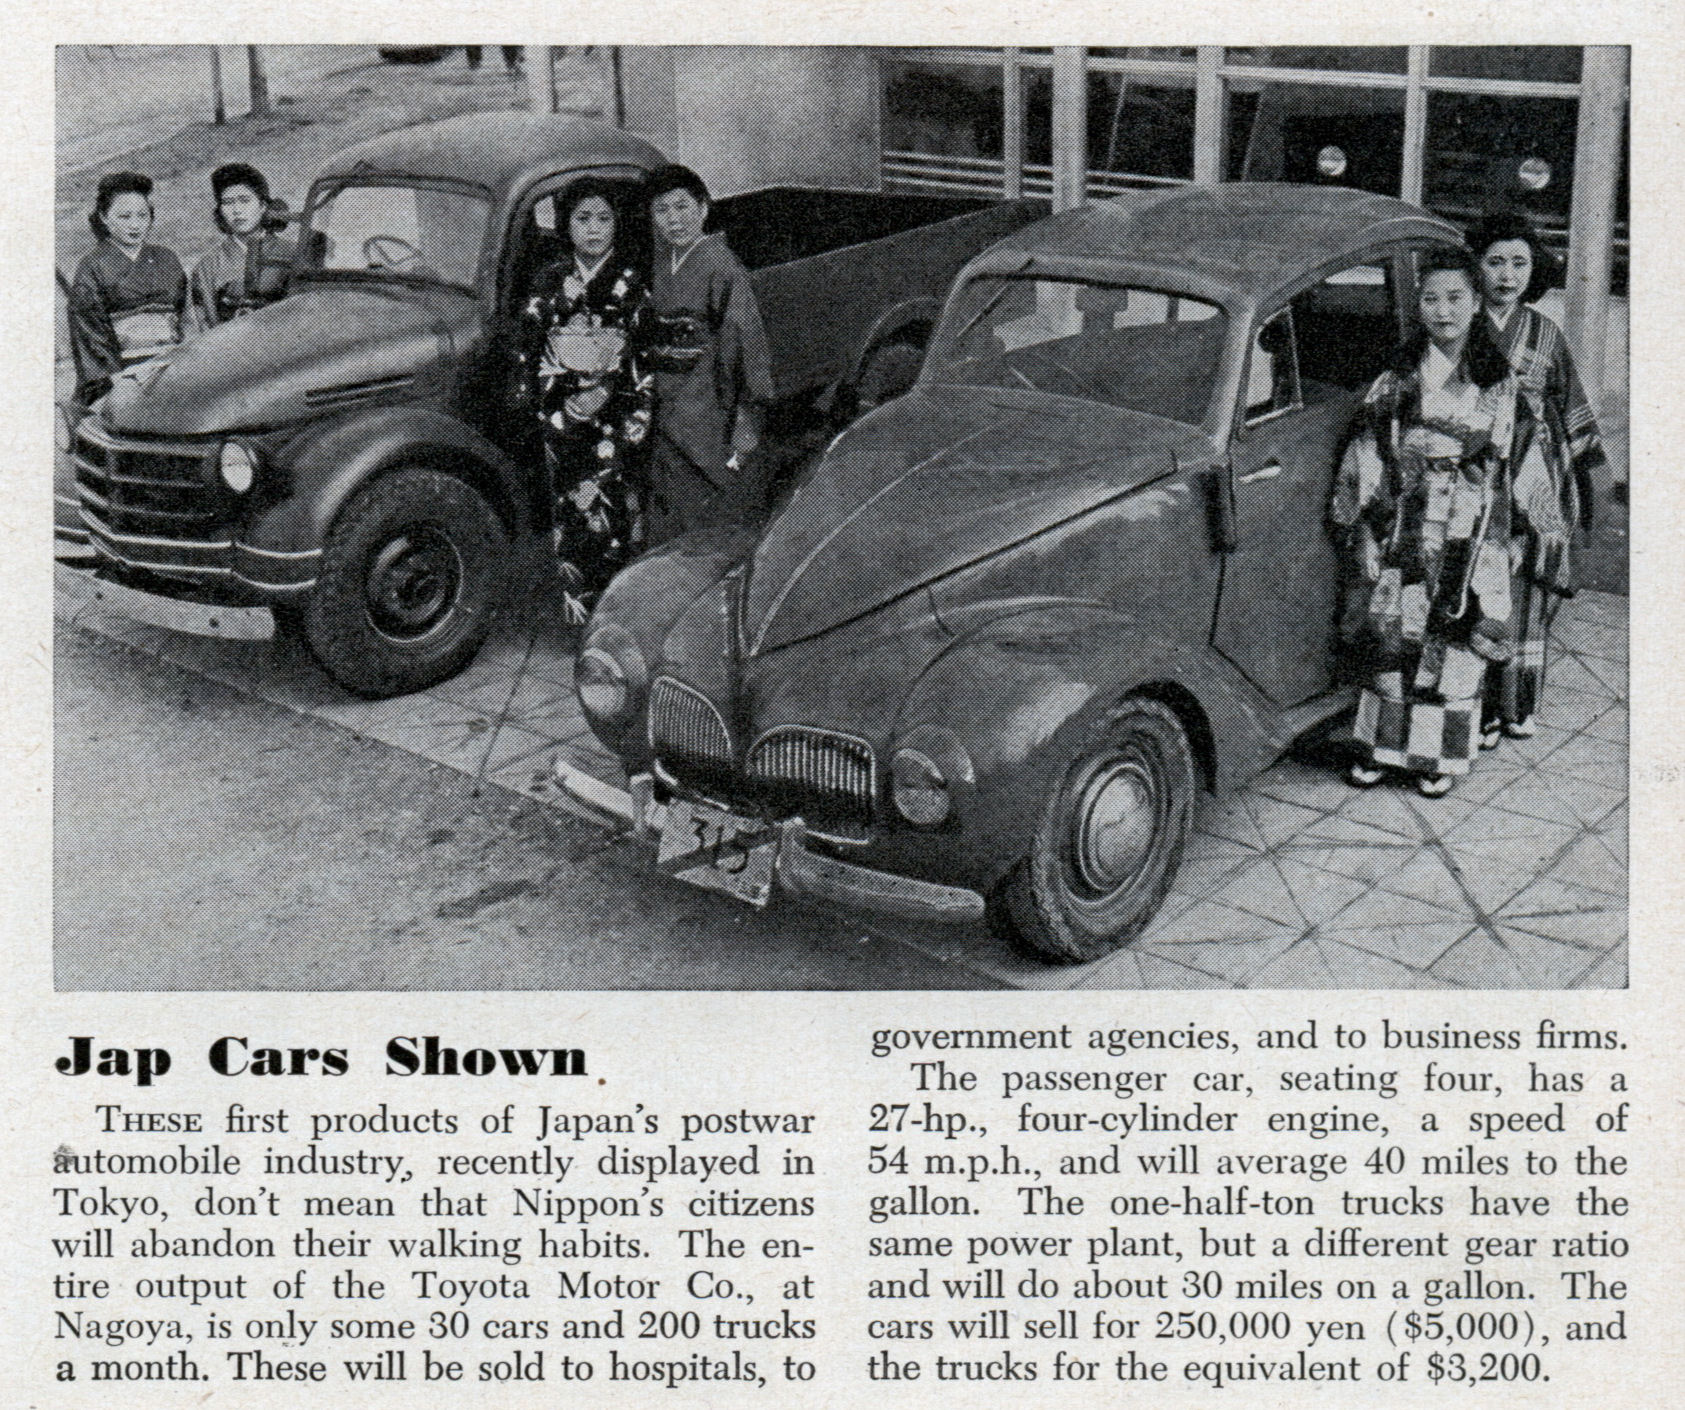 Jap Cars Shown (Very Early Toyotas) | Modern Mechanix